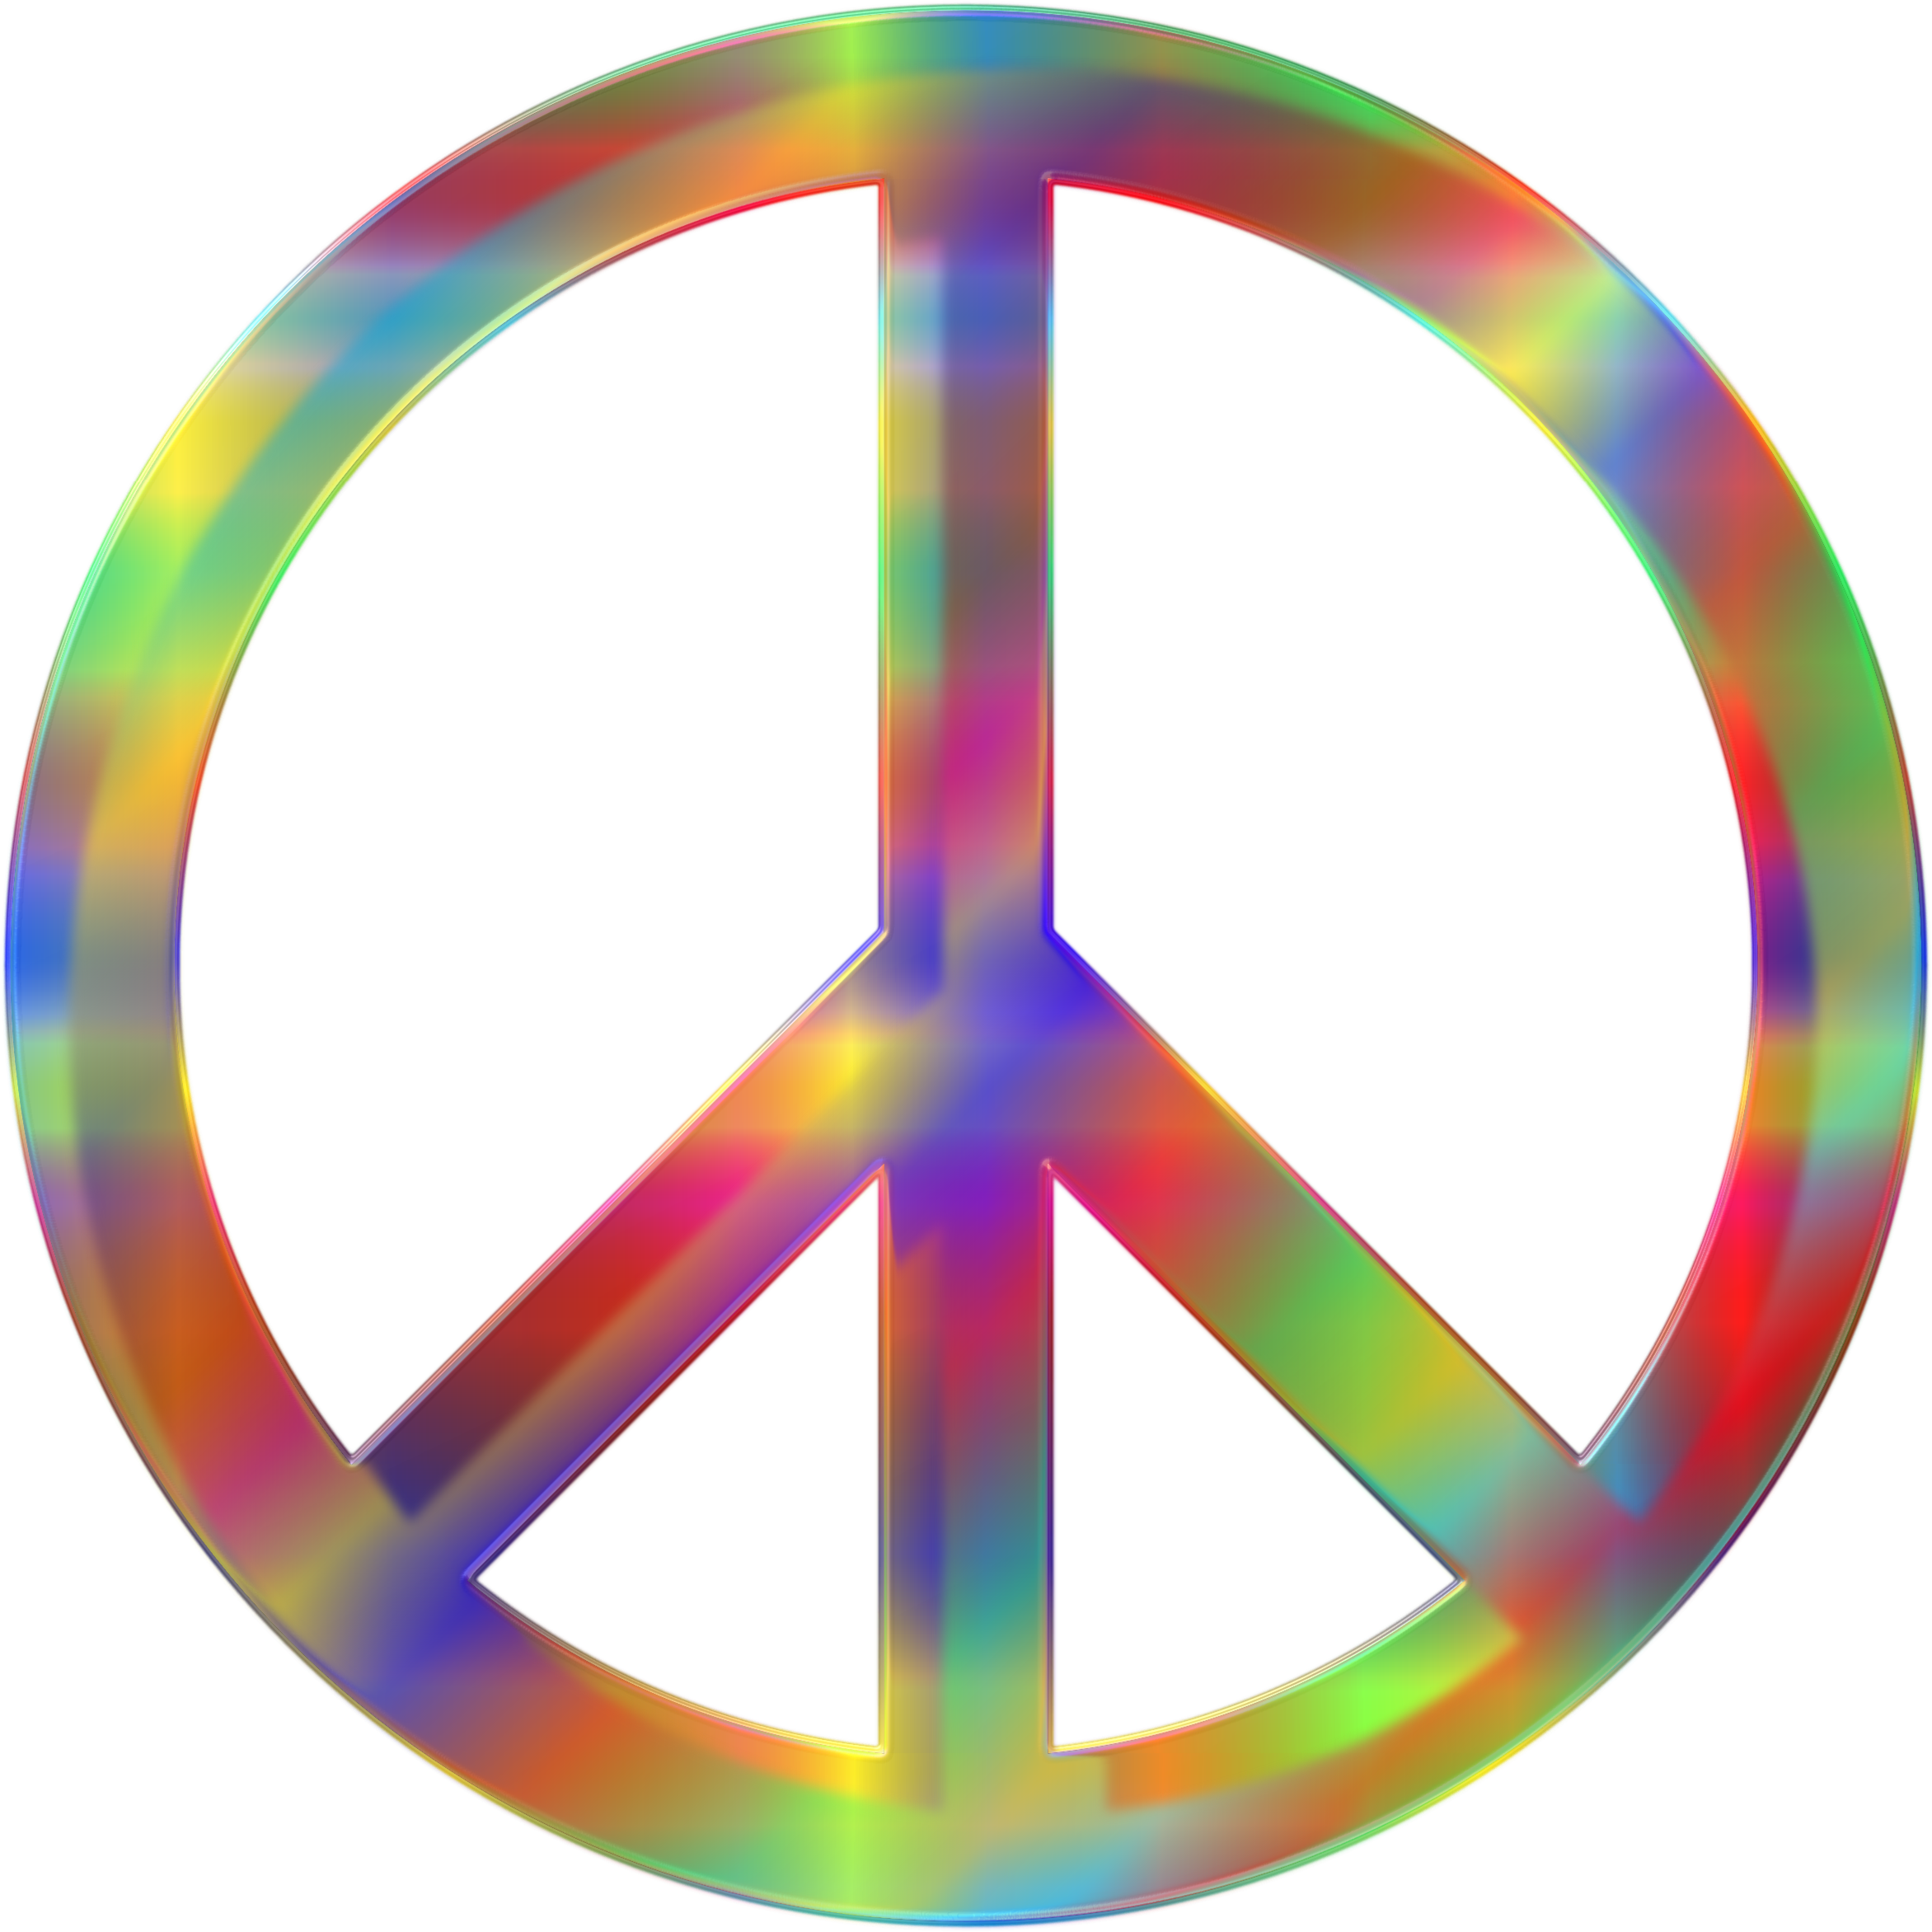 Cool peace sign clipart graphic freeuse library Pics Of Peace Signs   Free download best Pics Of Peace Signs on ... graphic freeuse library